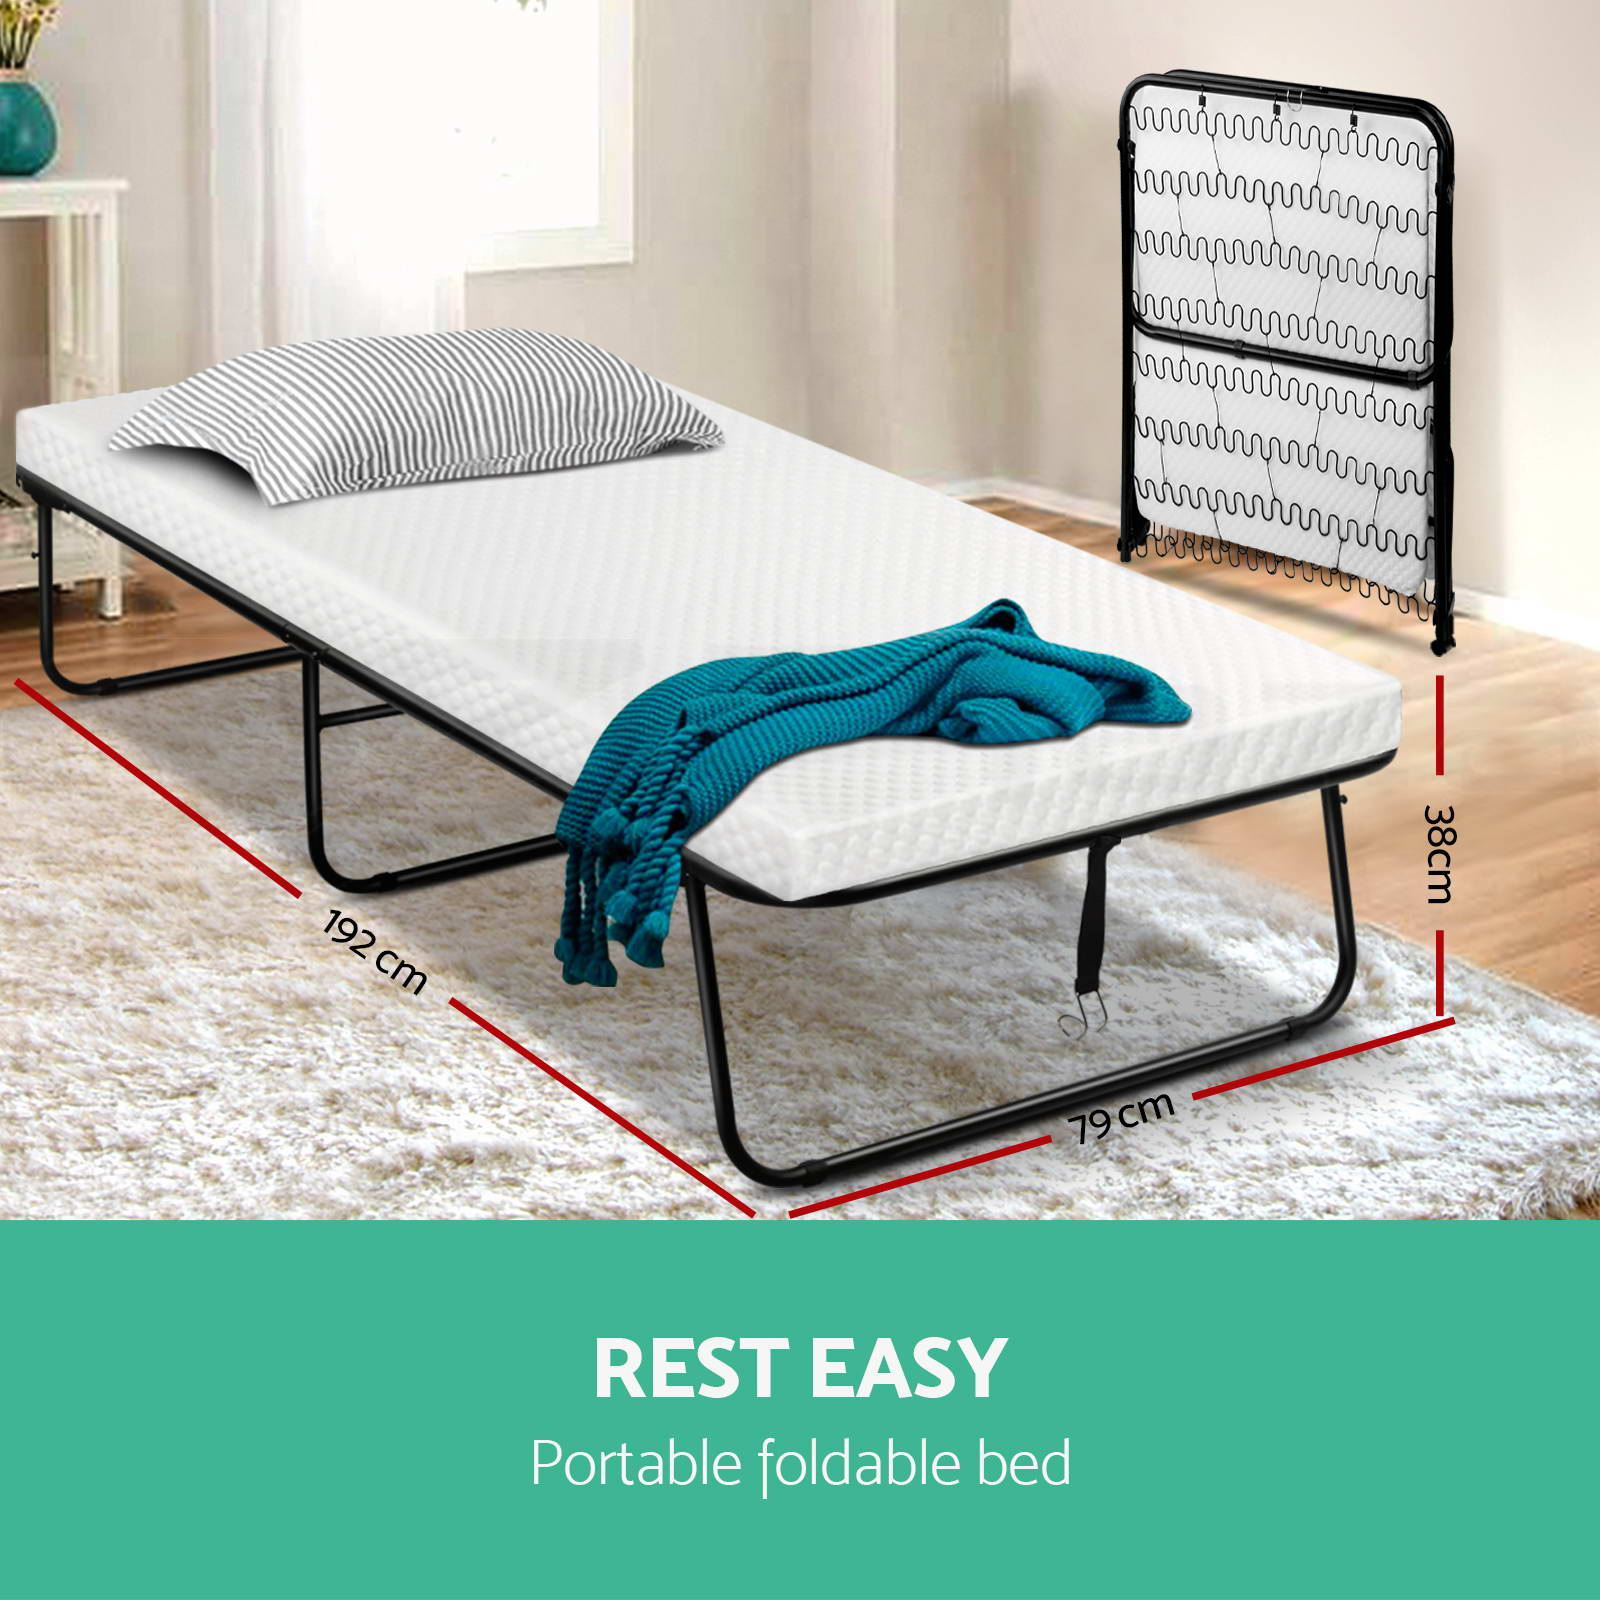 Foldable Single Mattress Artiss Portable Folding Bed Foldable Single Mattress